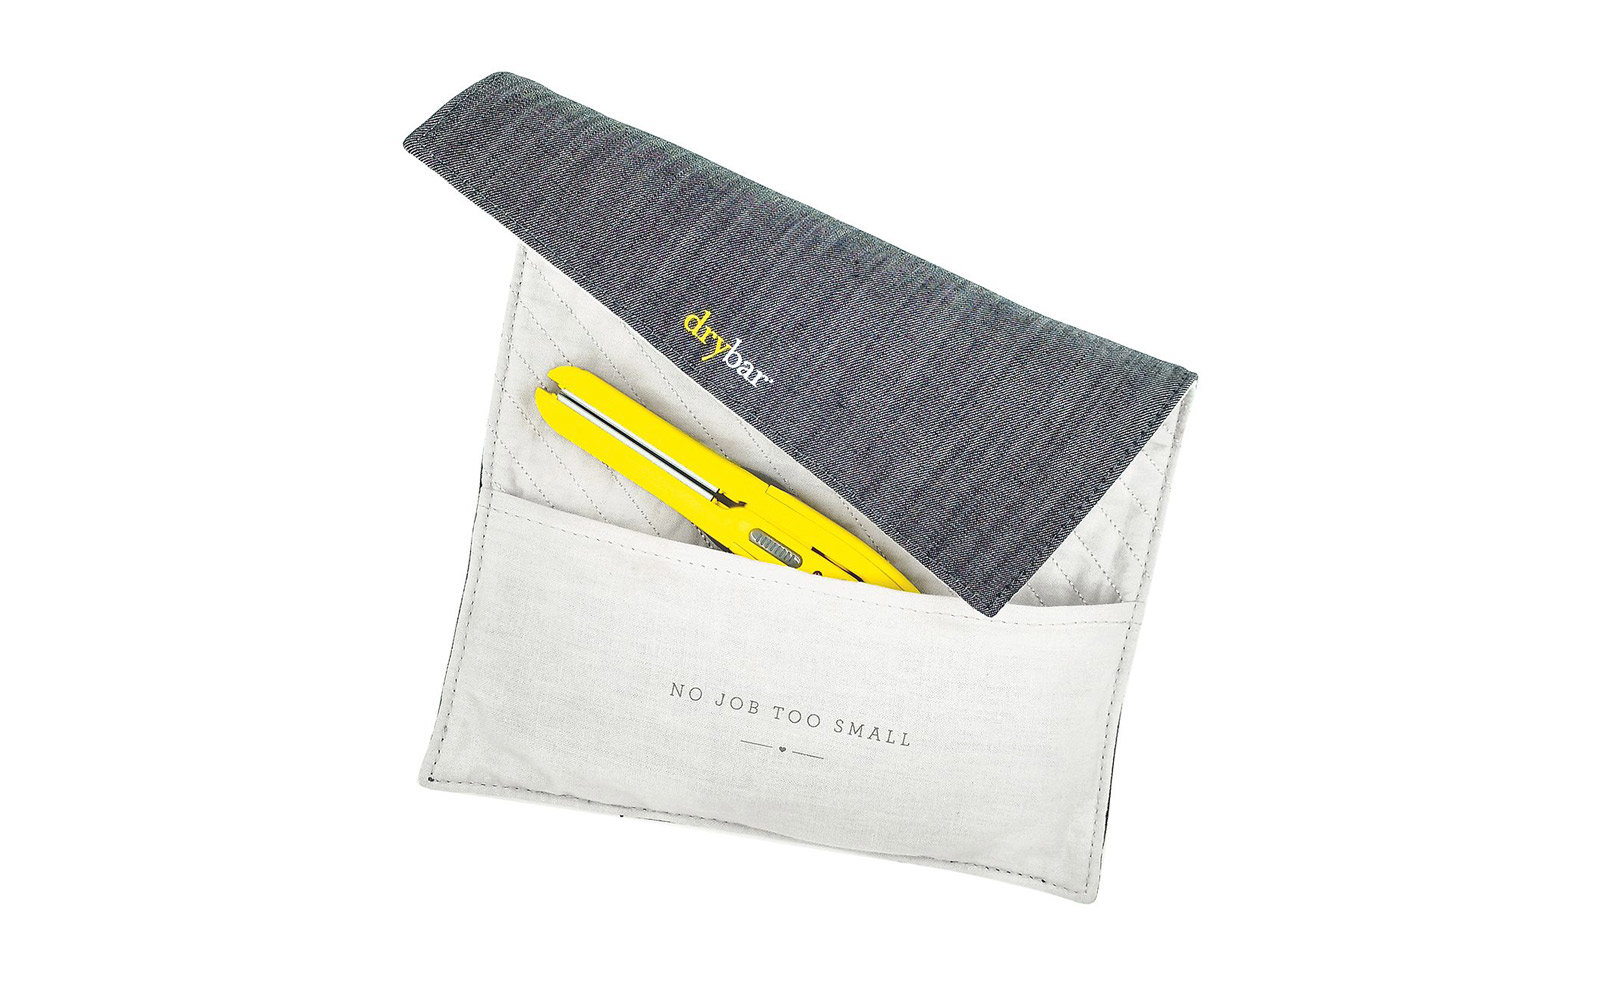 drybar travel iron